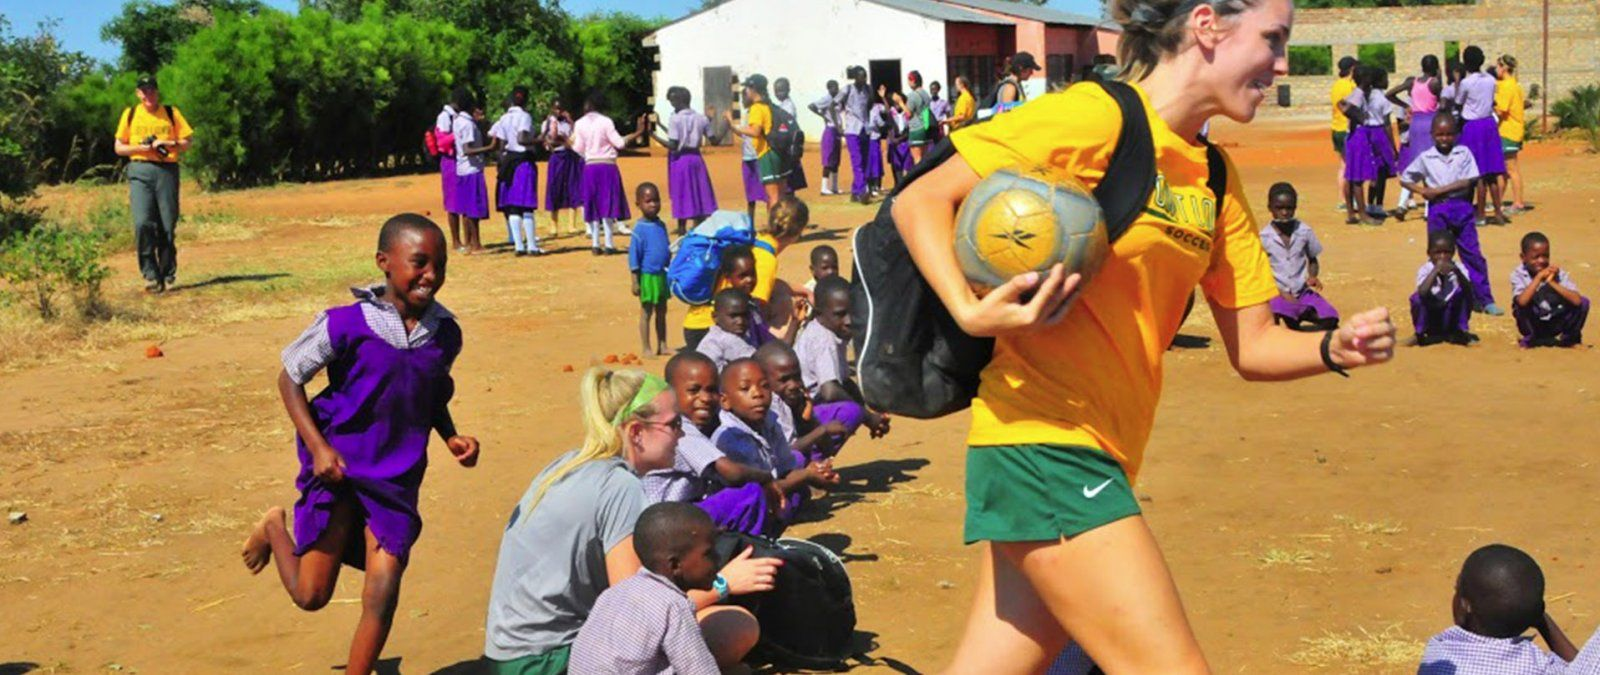 A female soccer player carrying a soccer ball is chased by a child in Zambia around a circle.